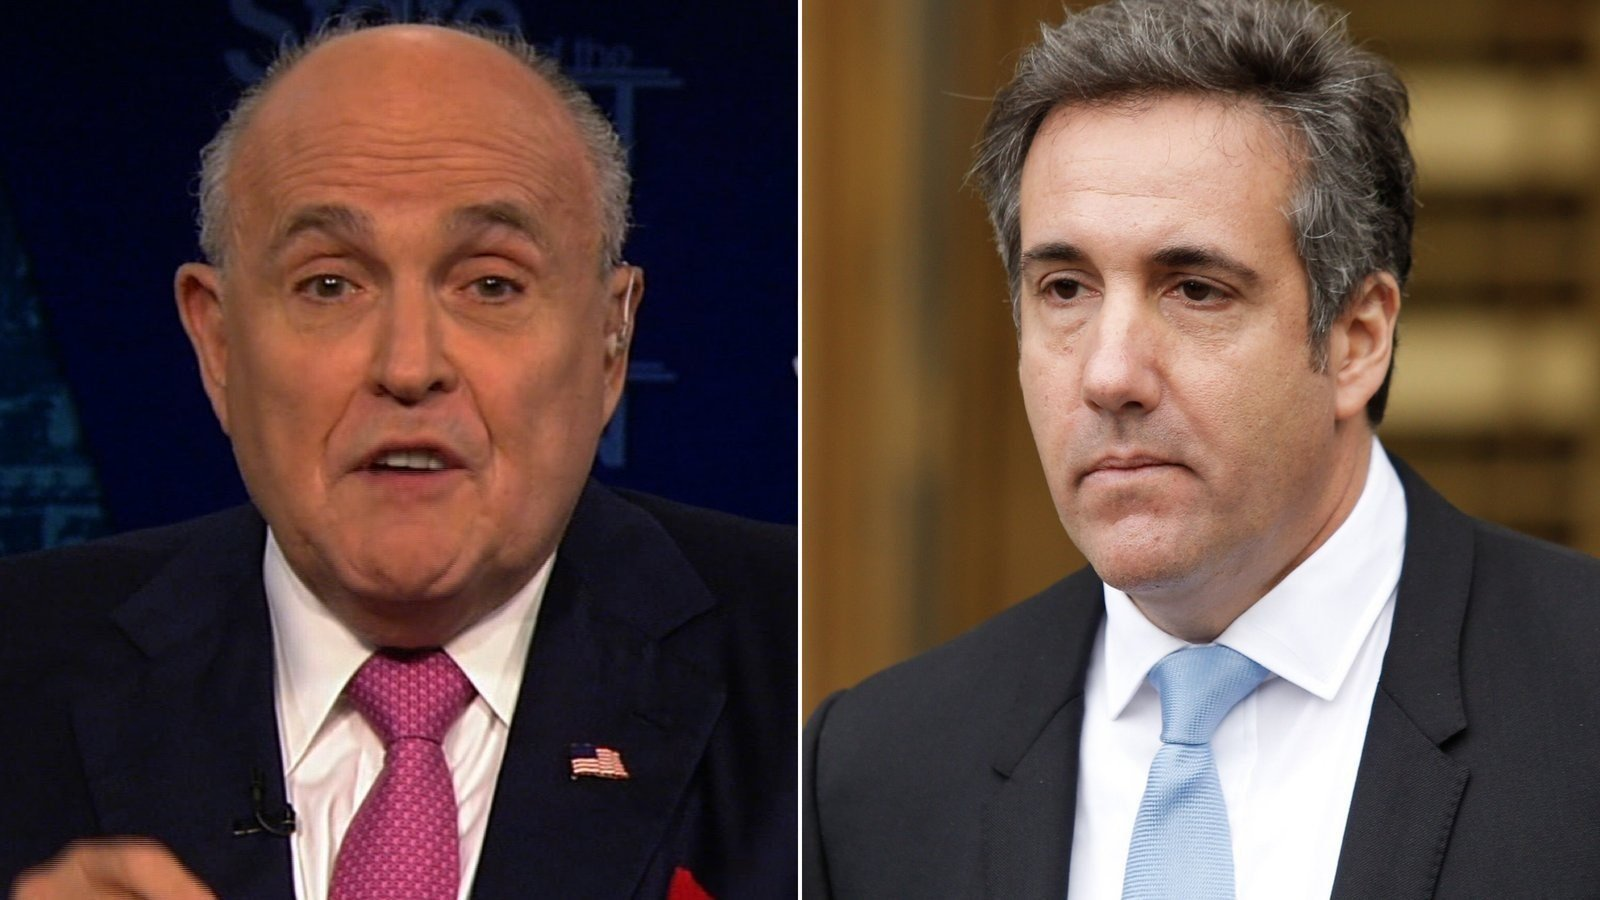 Trump's ex-lawyer: Giuliani hurt Trump's case by flip-flopping on Cohen